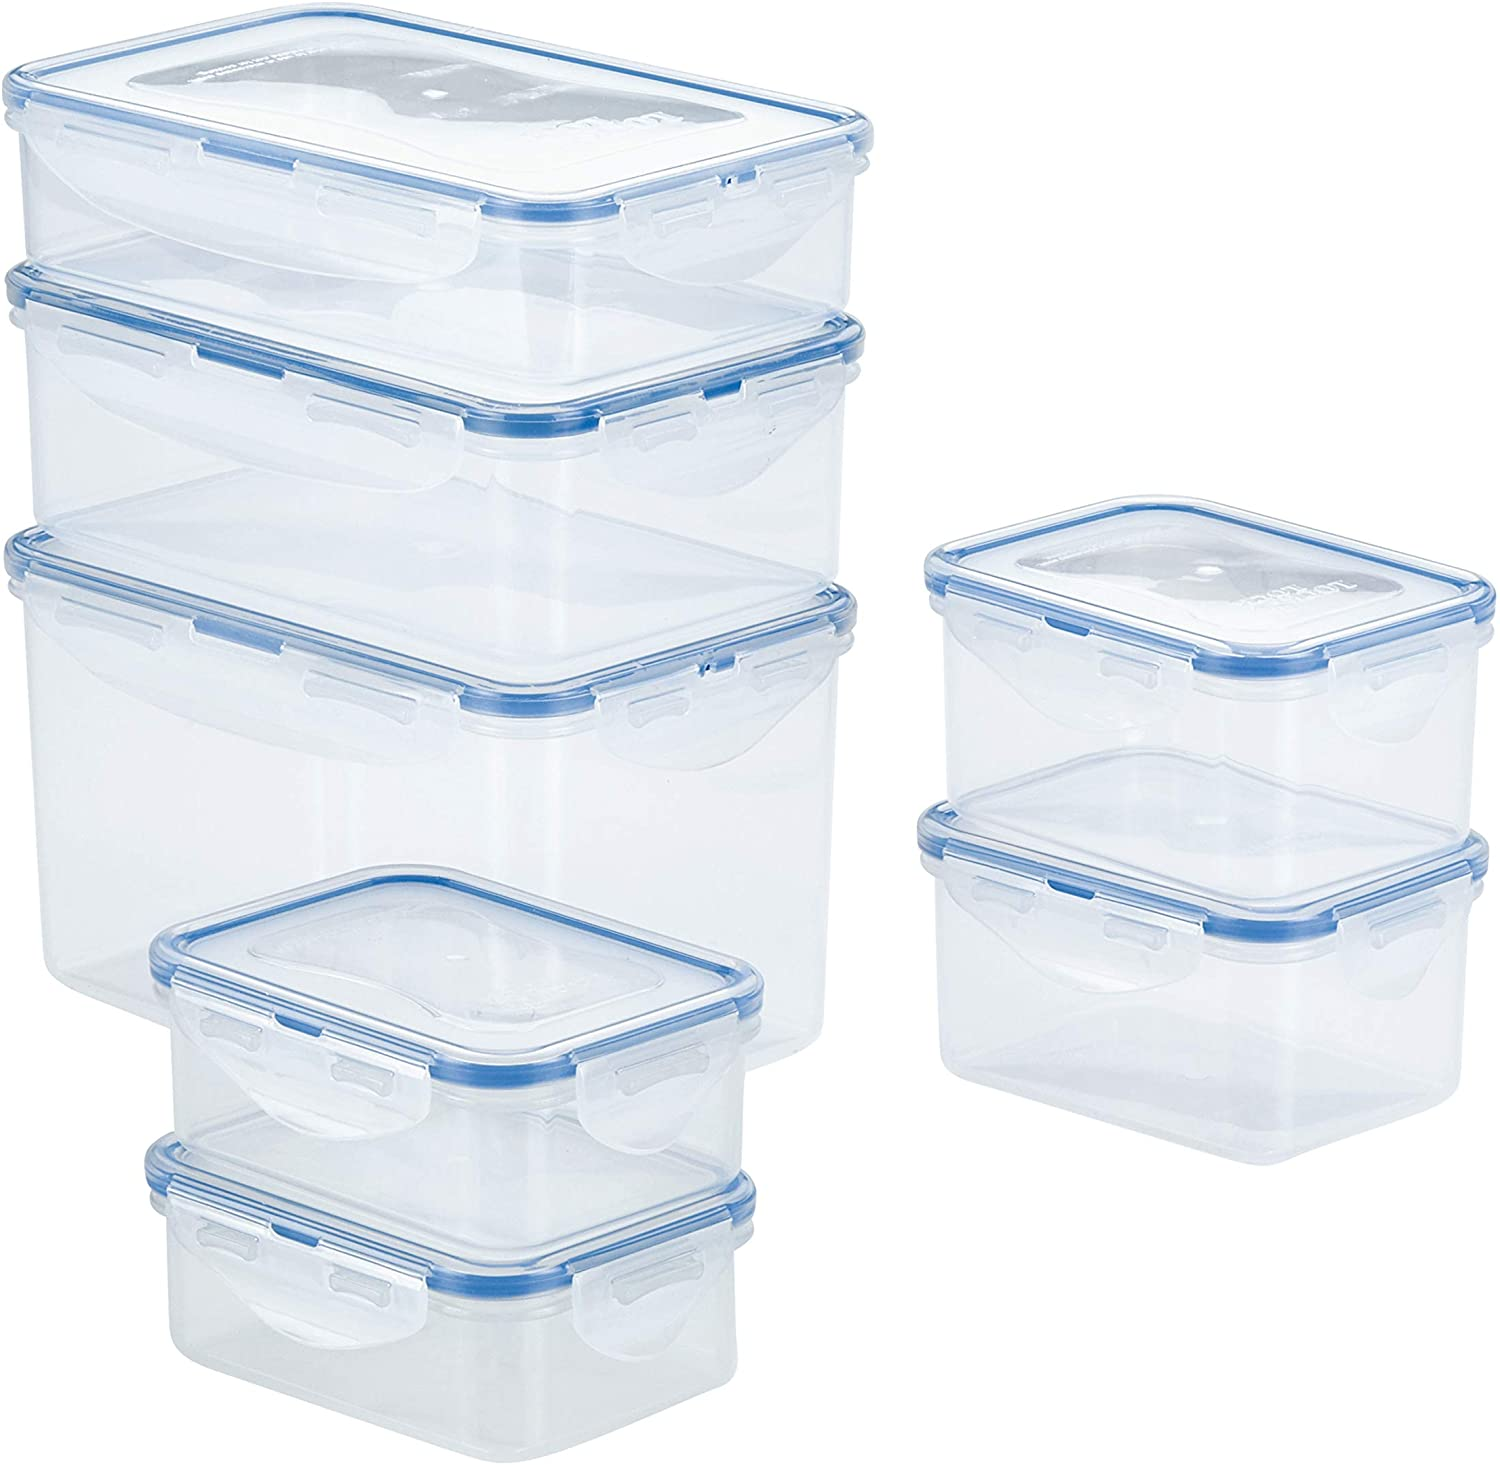 LOCK & LOCK Easy Essentials Food Storage lids/Airtight containers, BPA Free, 14 Piece - Rectangle, Clear